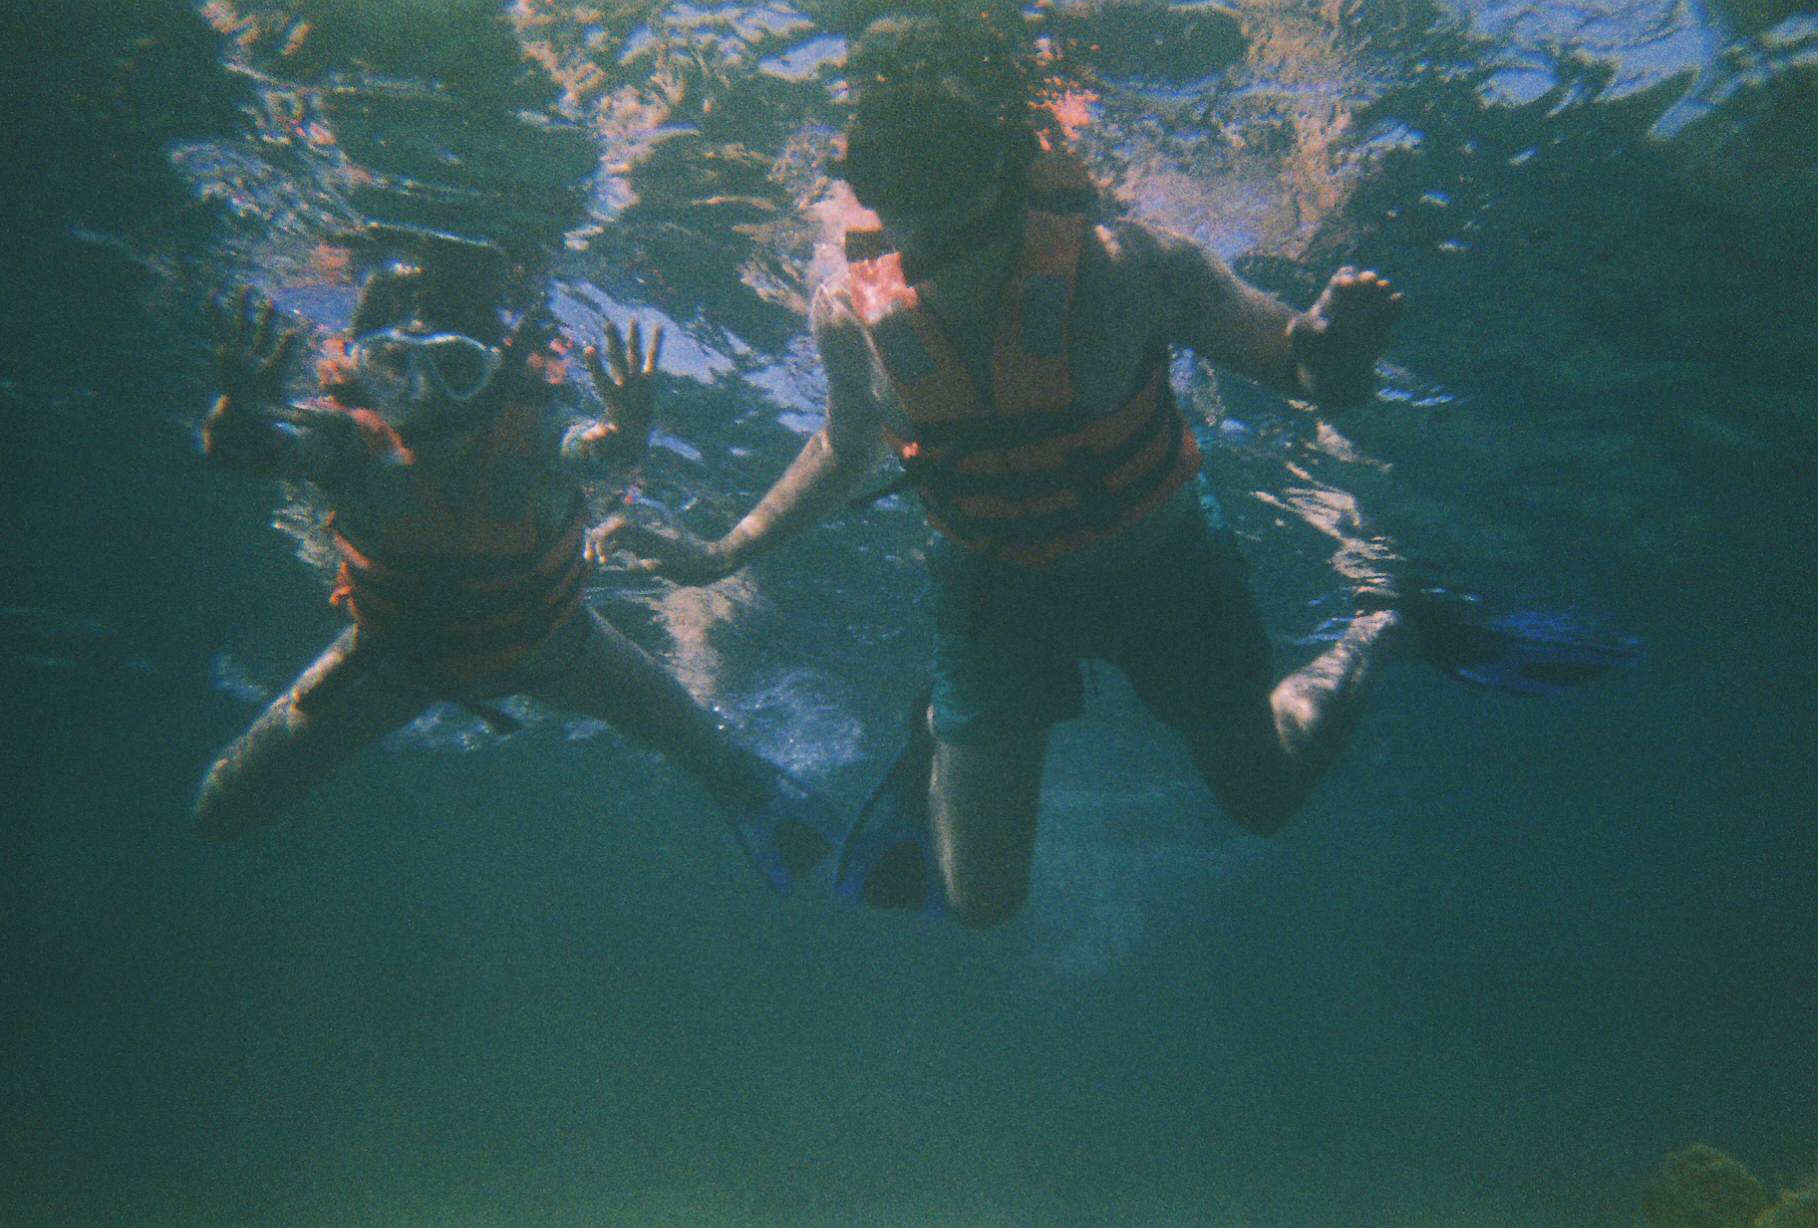 Two people snorkeling, underwater photograph. In Tulum off a coral reef. Old expired 35mm film.